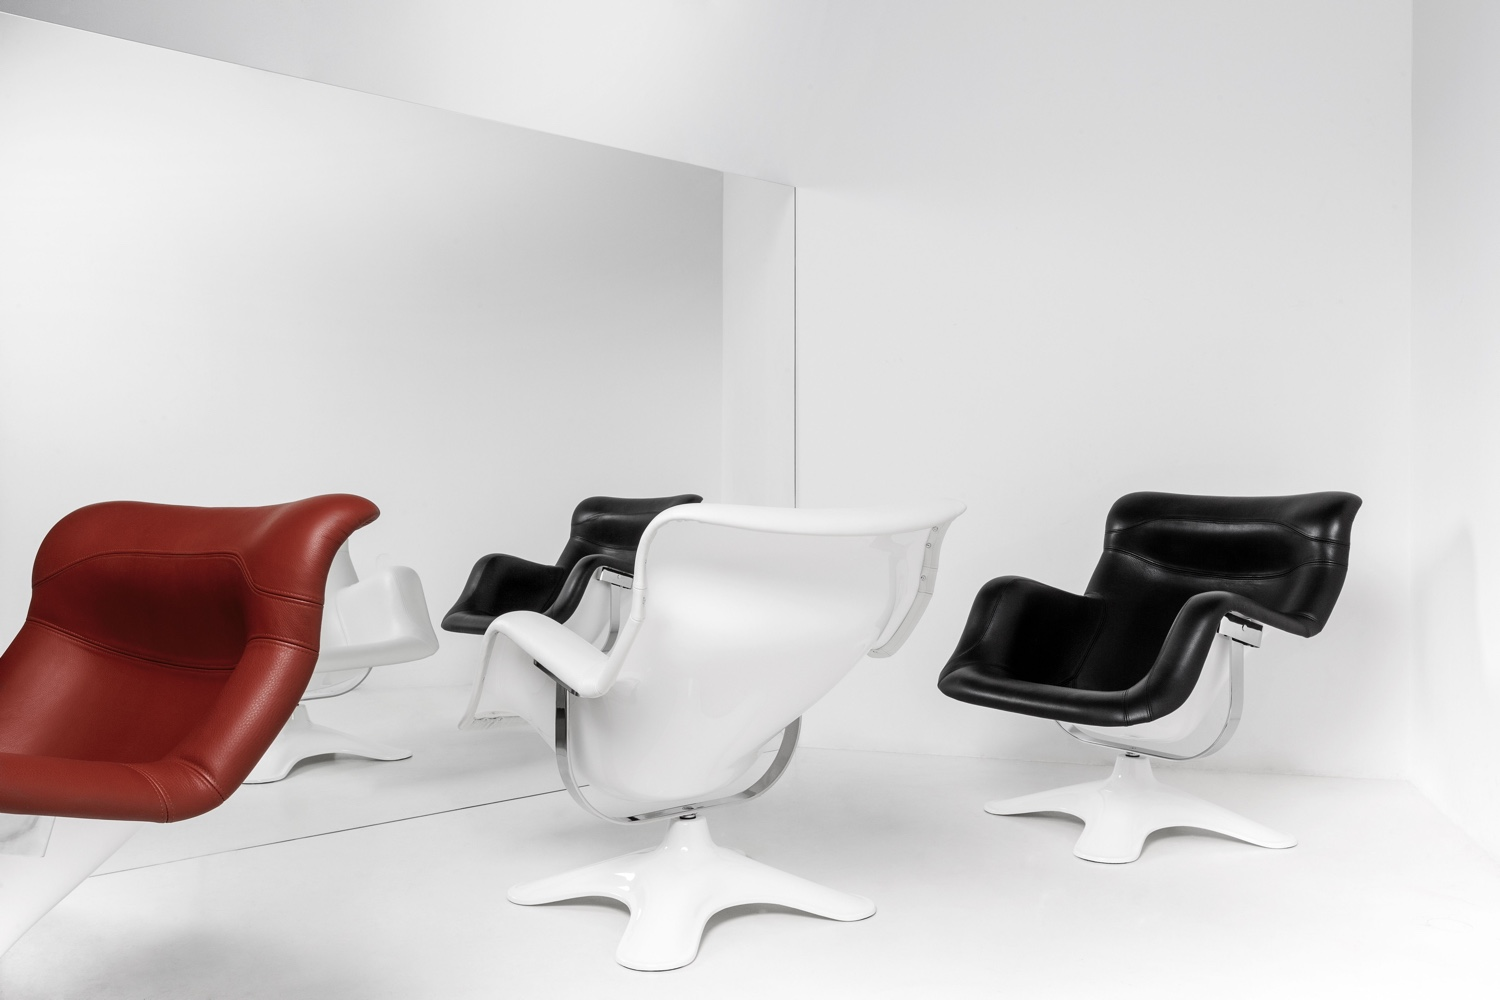 Karuselli Lounge Chair. Image courtesy of Artek.